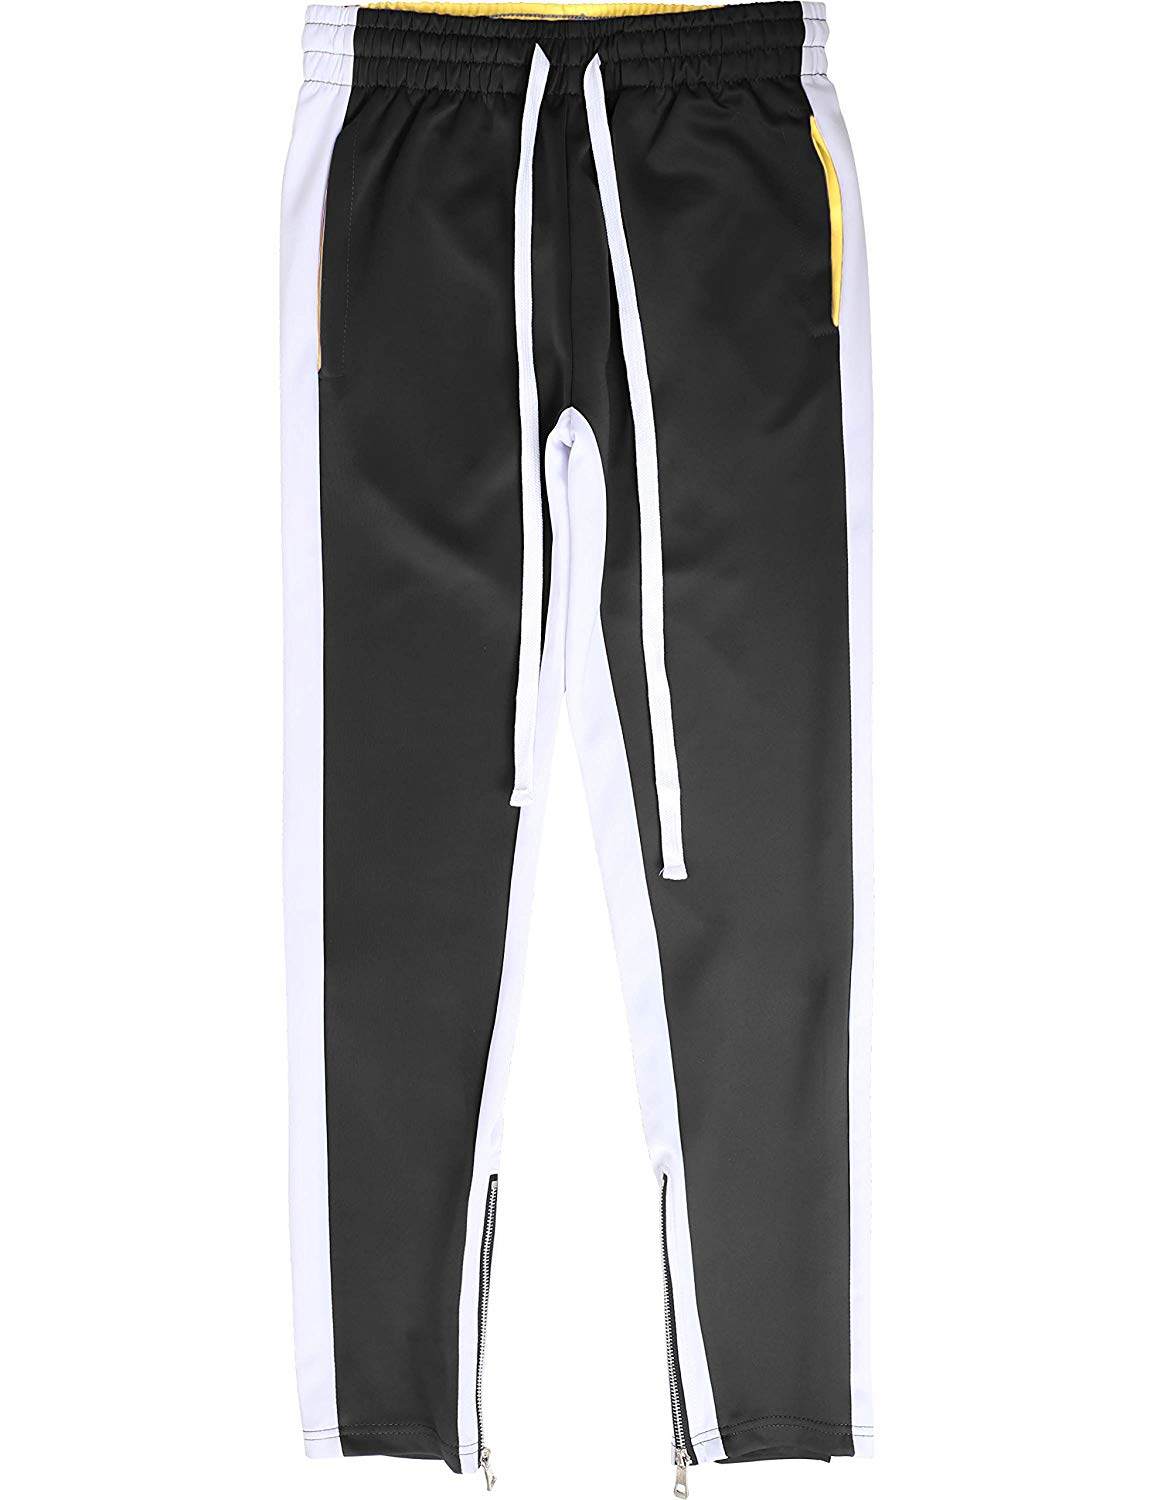 Ma Croix Mens Stripe Track Three Tone Pants and Jackets Skinny Fit Stretch Casual Athletic Joggers